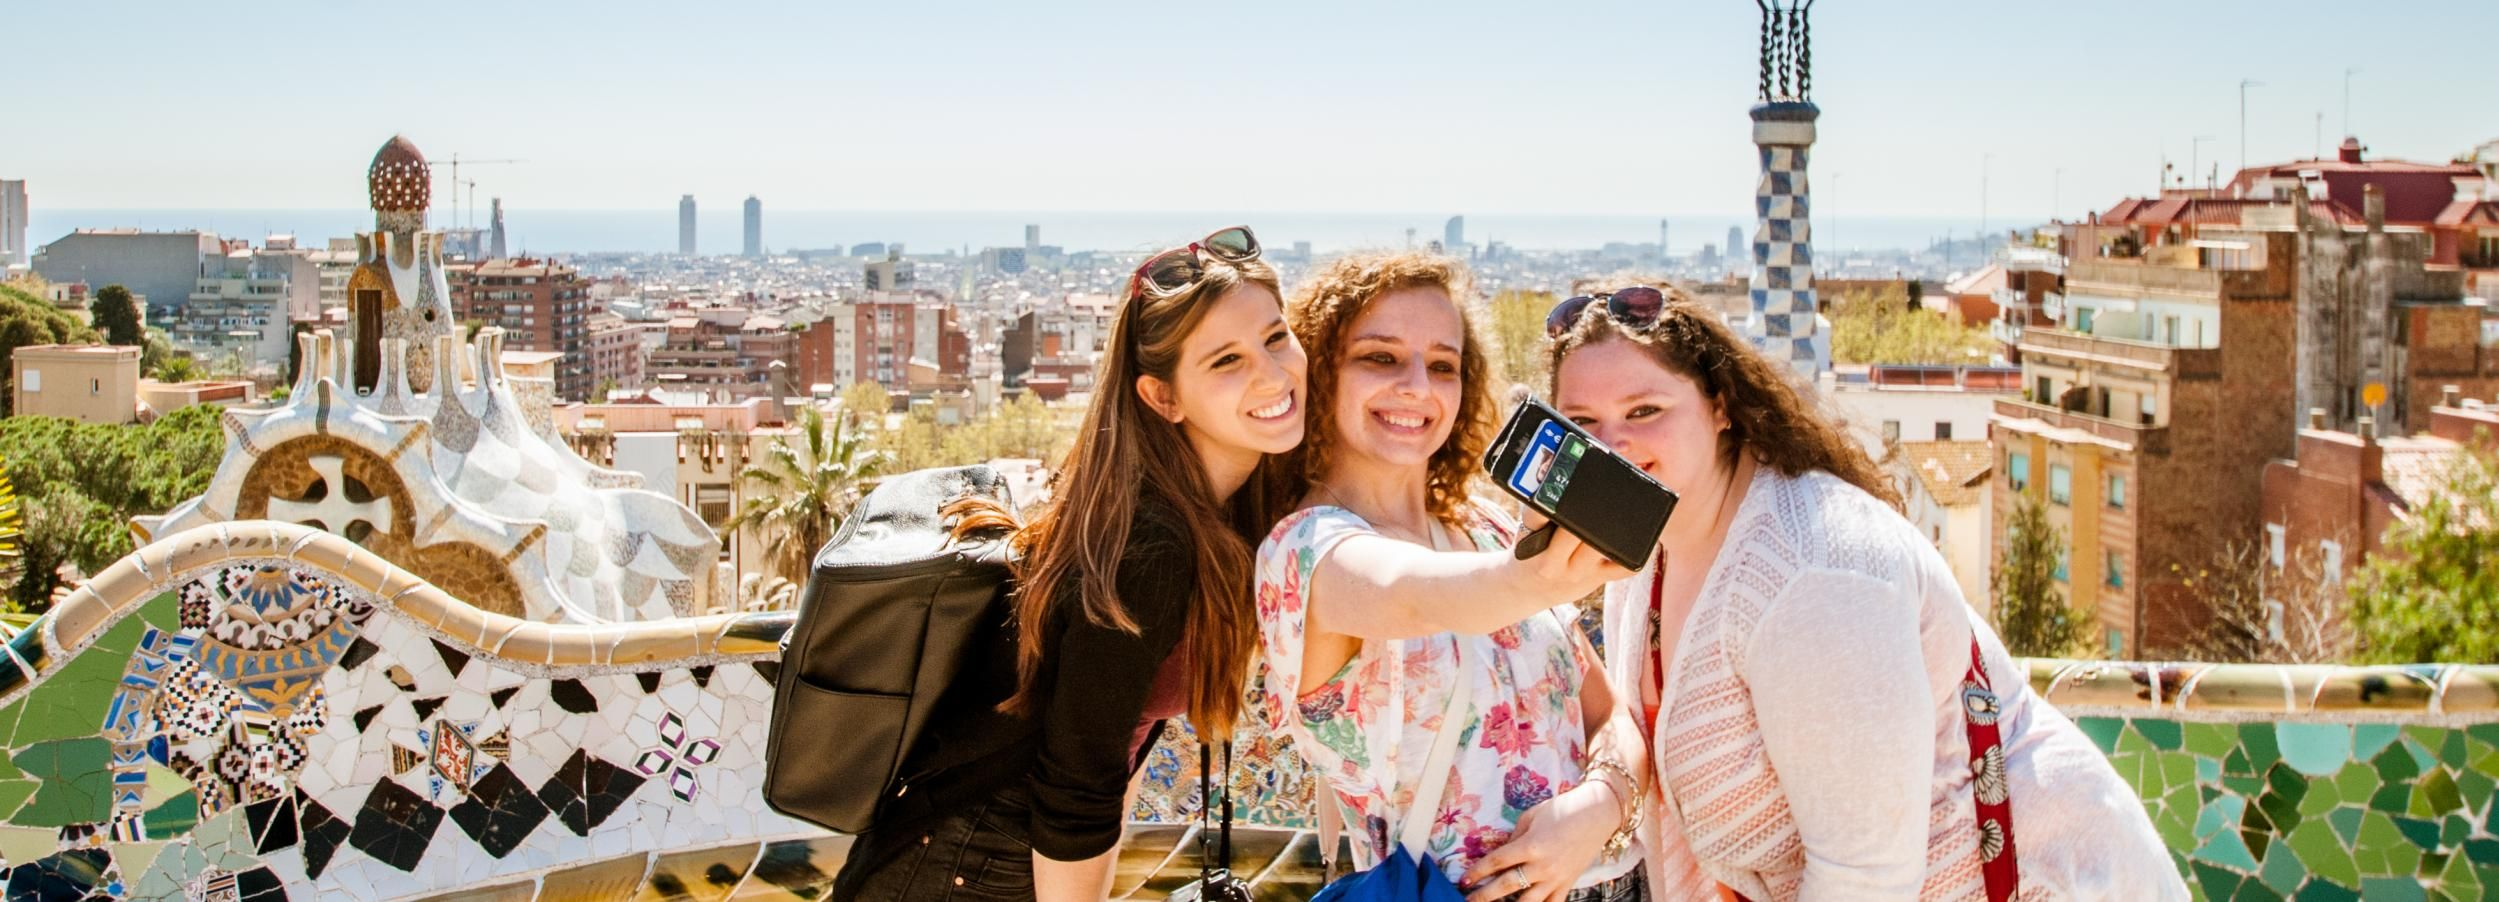 Skip-the-Line Barcelona Tour with Personal Pick-Up